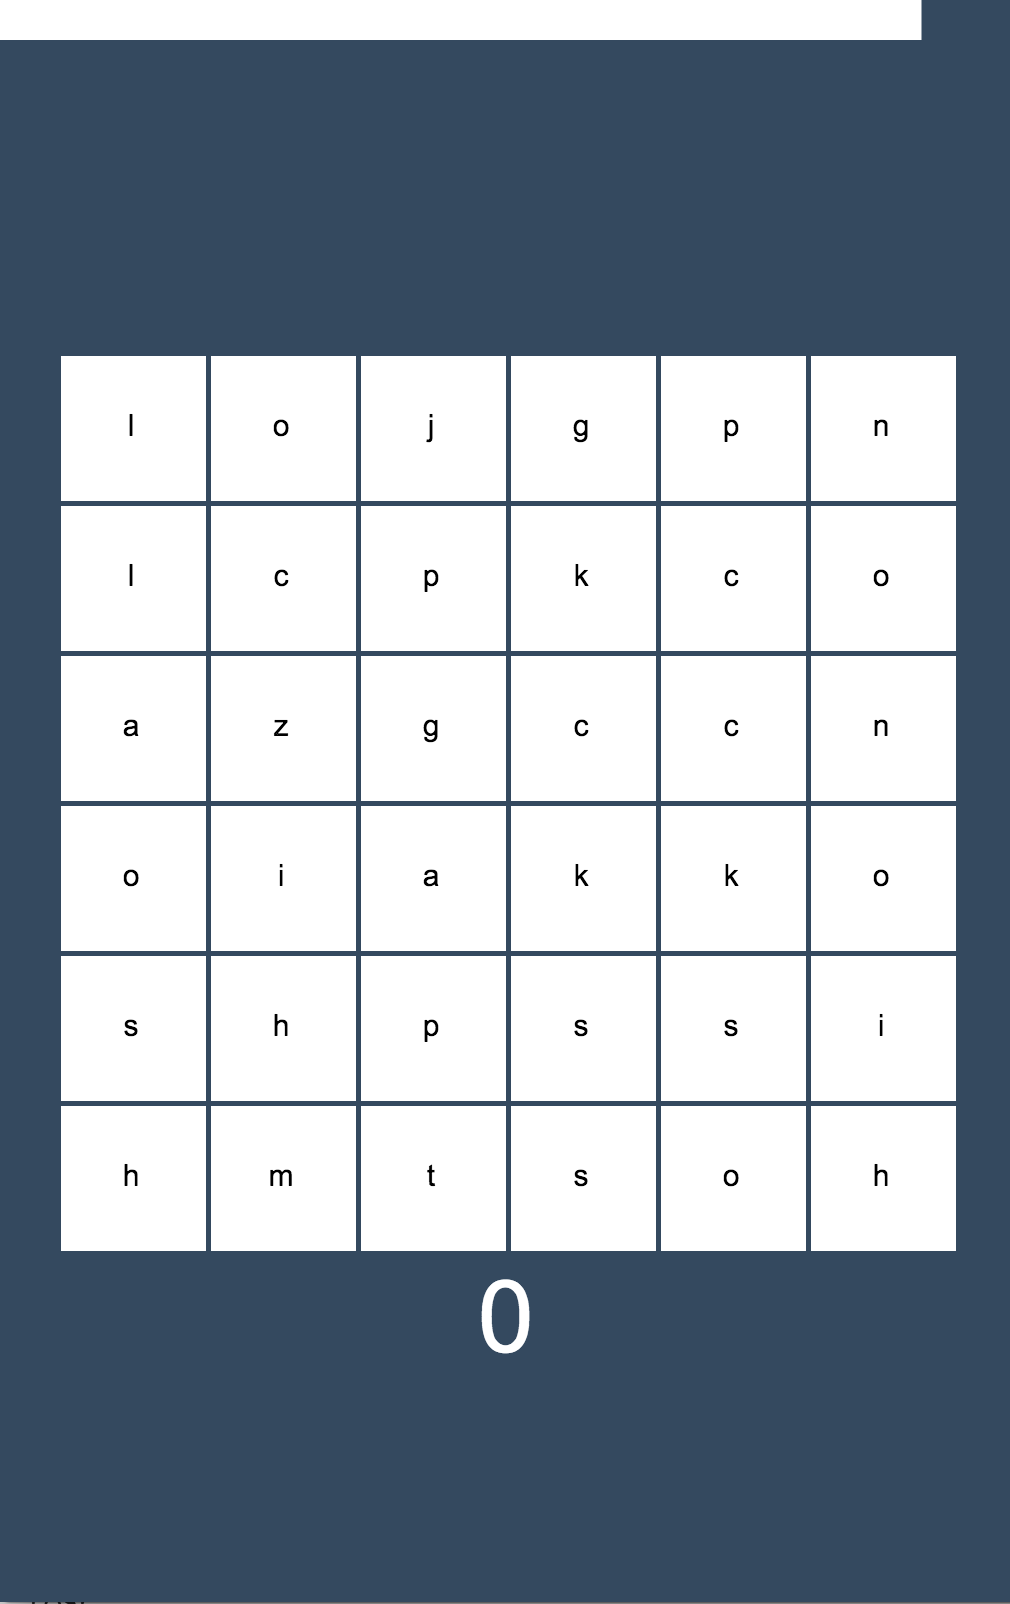 Part 1: Building a Word Search Game in HTML5 with Phaser